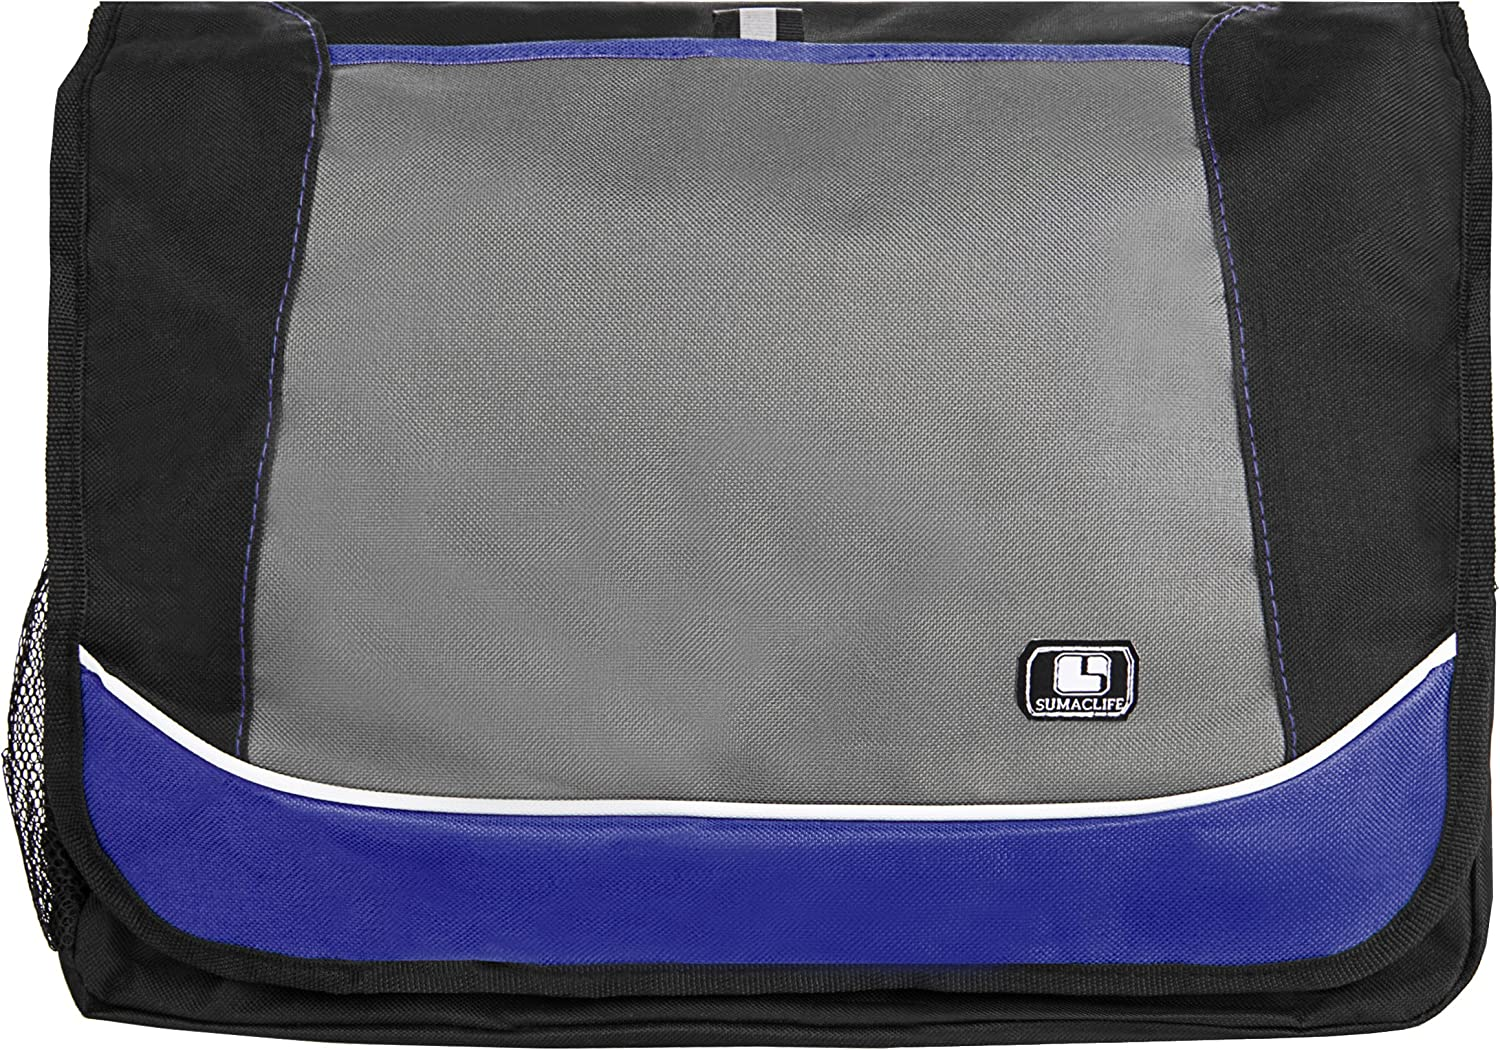 Classic Messenger Shoulder Bag for Acer Aspire, Chromebook, Nitro, Spin, Swift